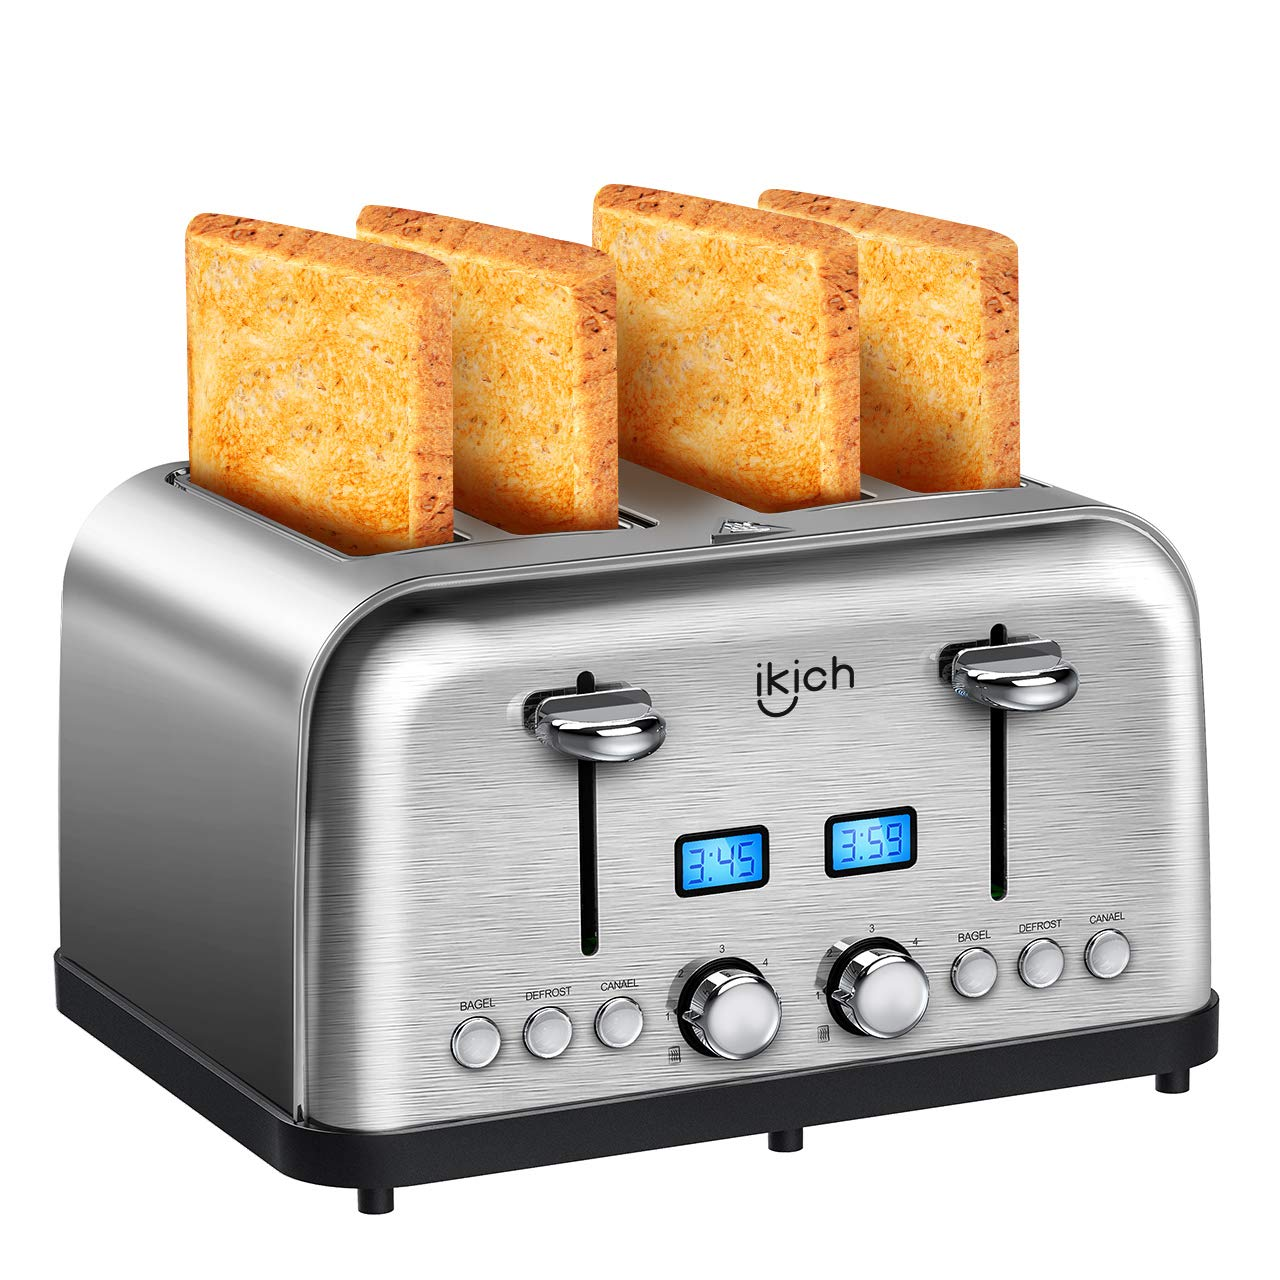 Toaster 4 Slice, IKICH Stainless Steel Bread Toaster [2 LCD Countdown Timer ] Bagel Toaster (Dual Independent Control Panels, 6 Toast Settings, Bagel/Defrost/Cancel Function, Wide Slot, 1500W, Silver)